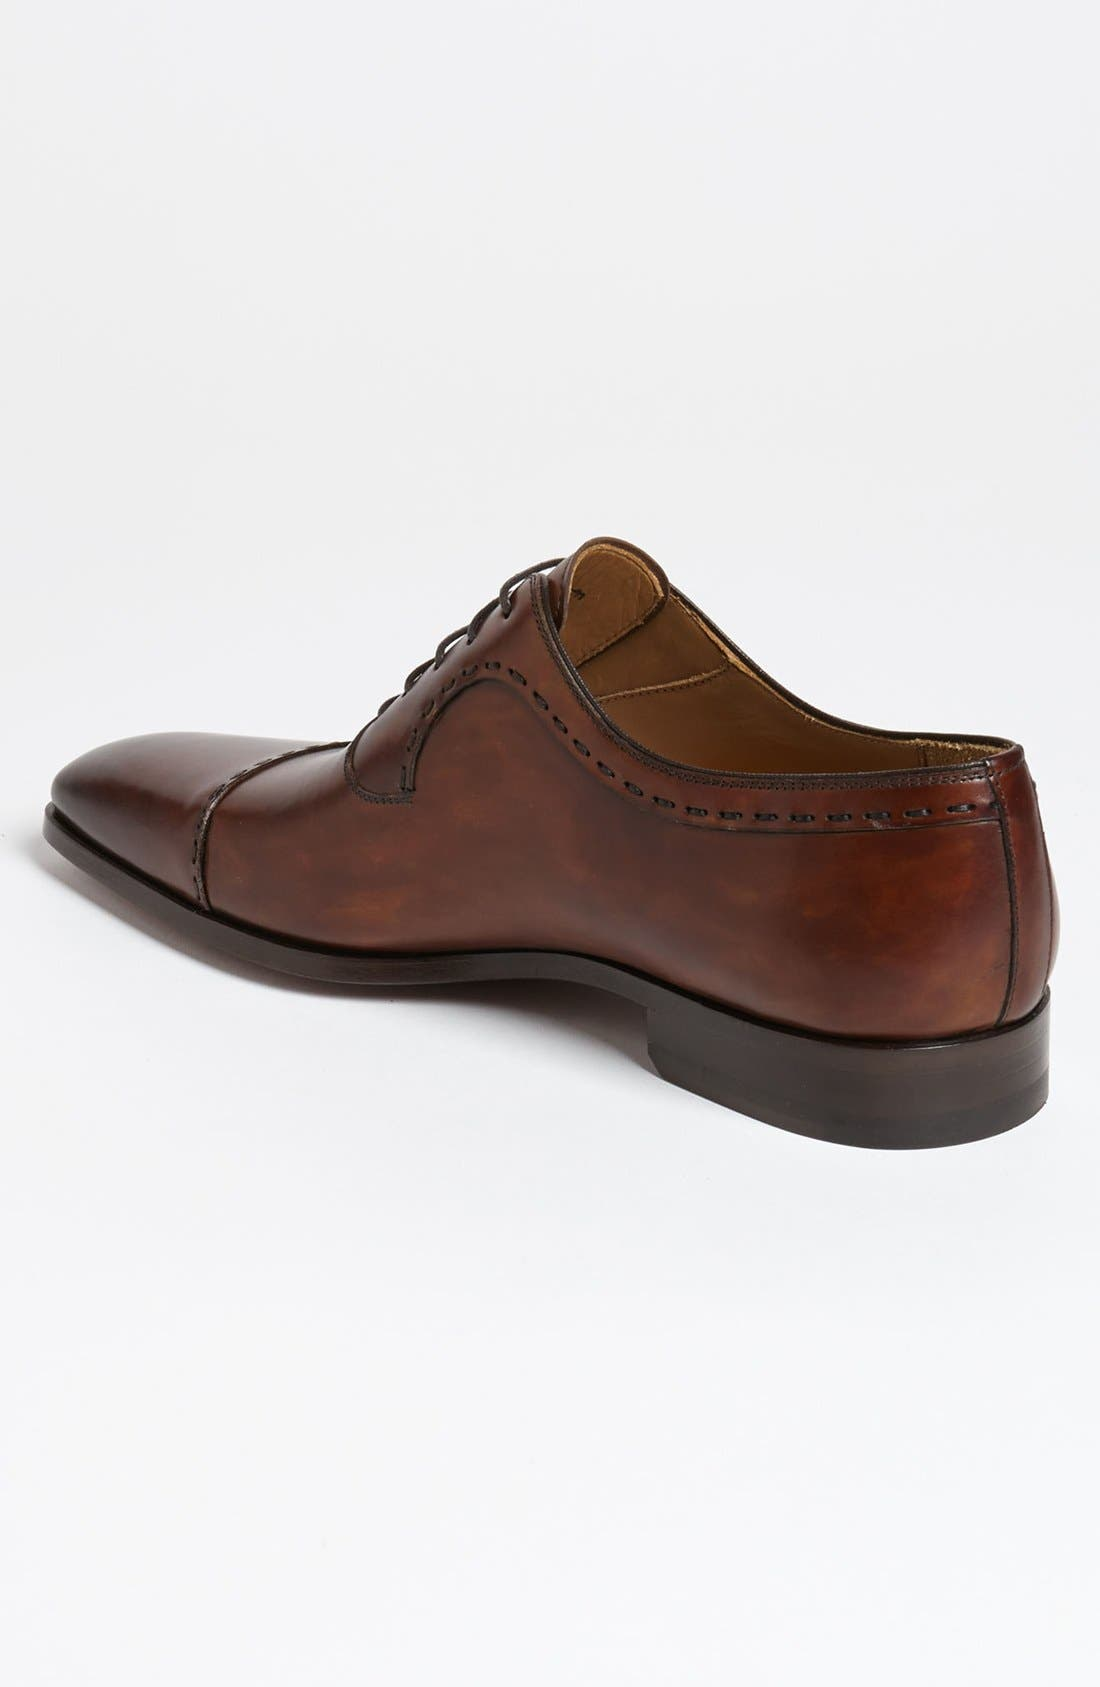 Alternate Image 2  - Magnanni 'Ariel' Cap Toe Oxford